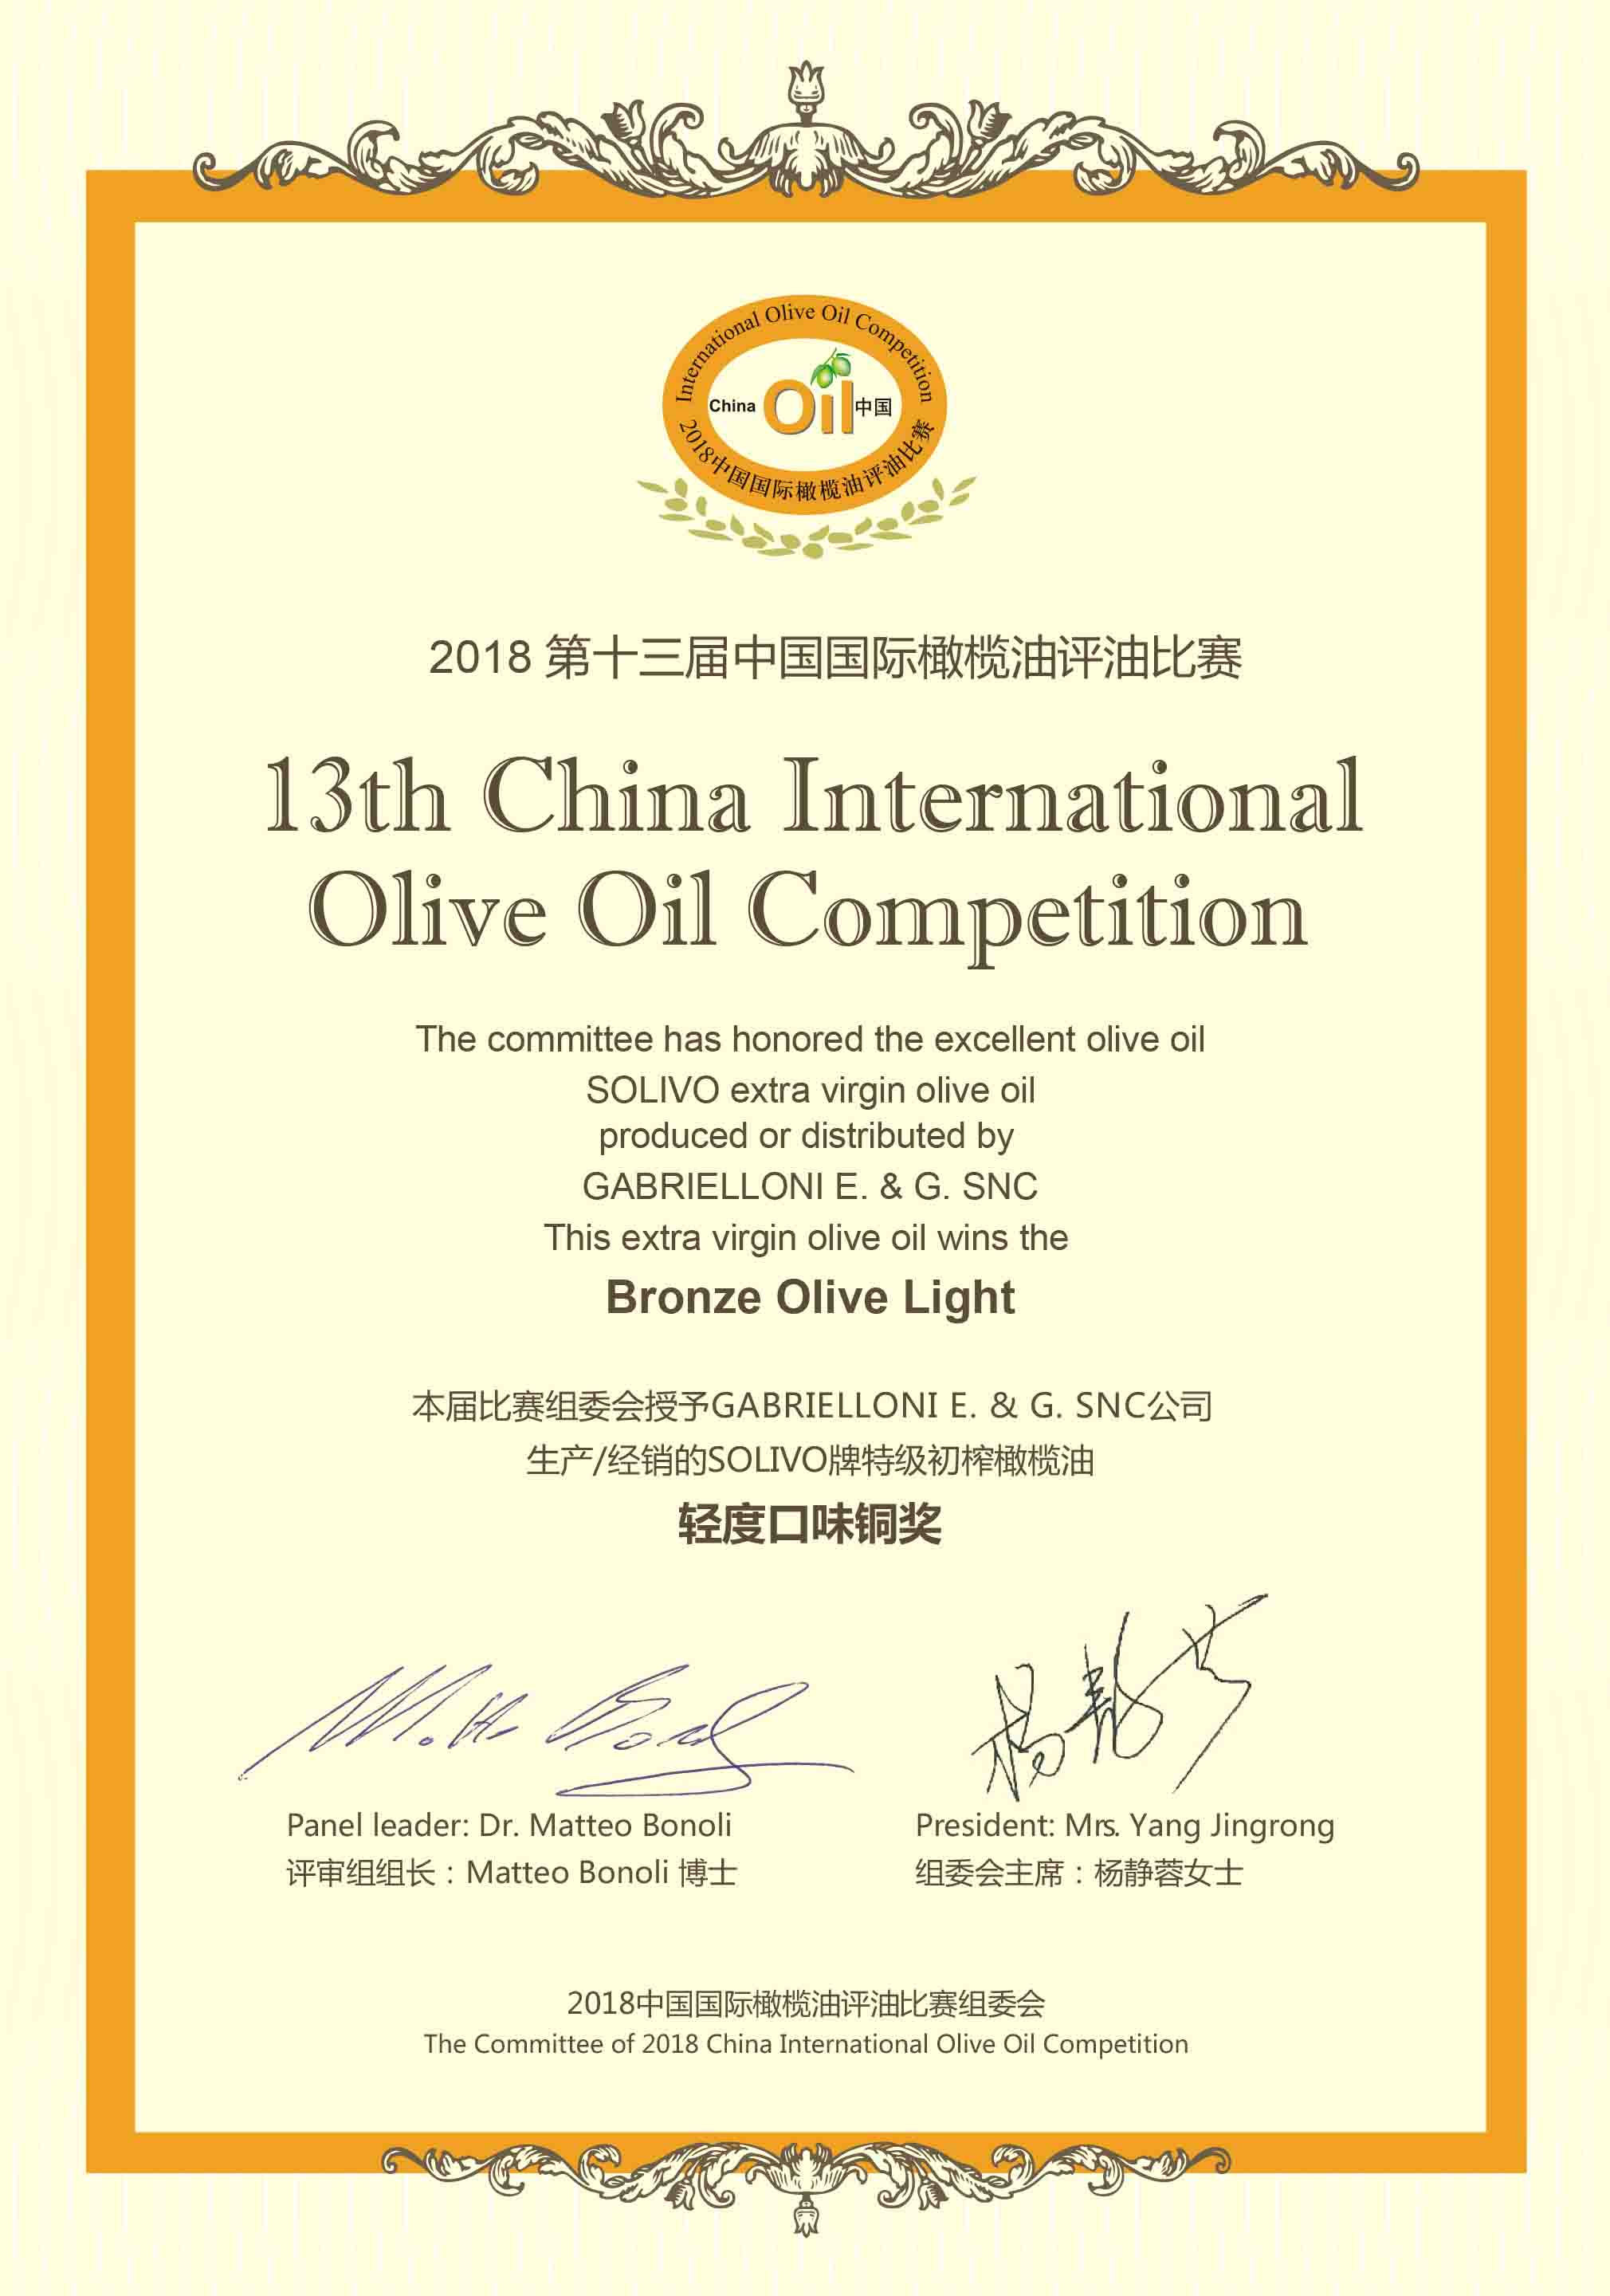 China International Olive Oil Competition 2018